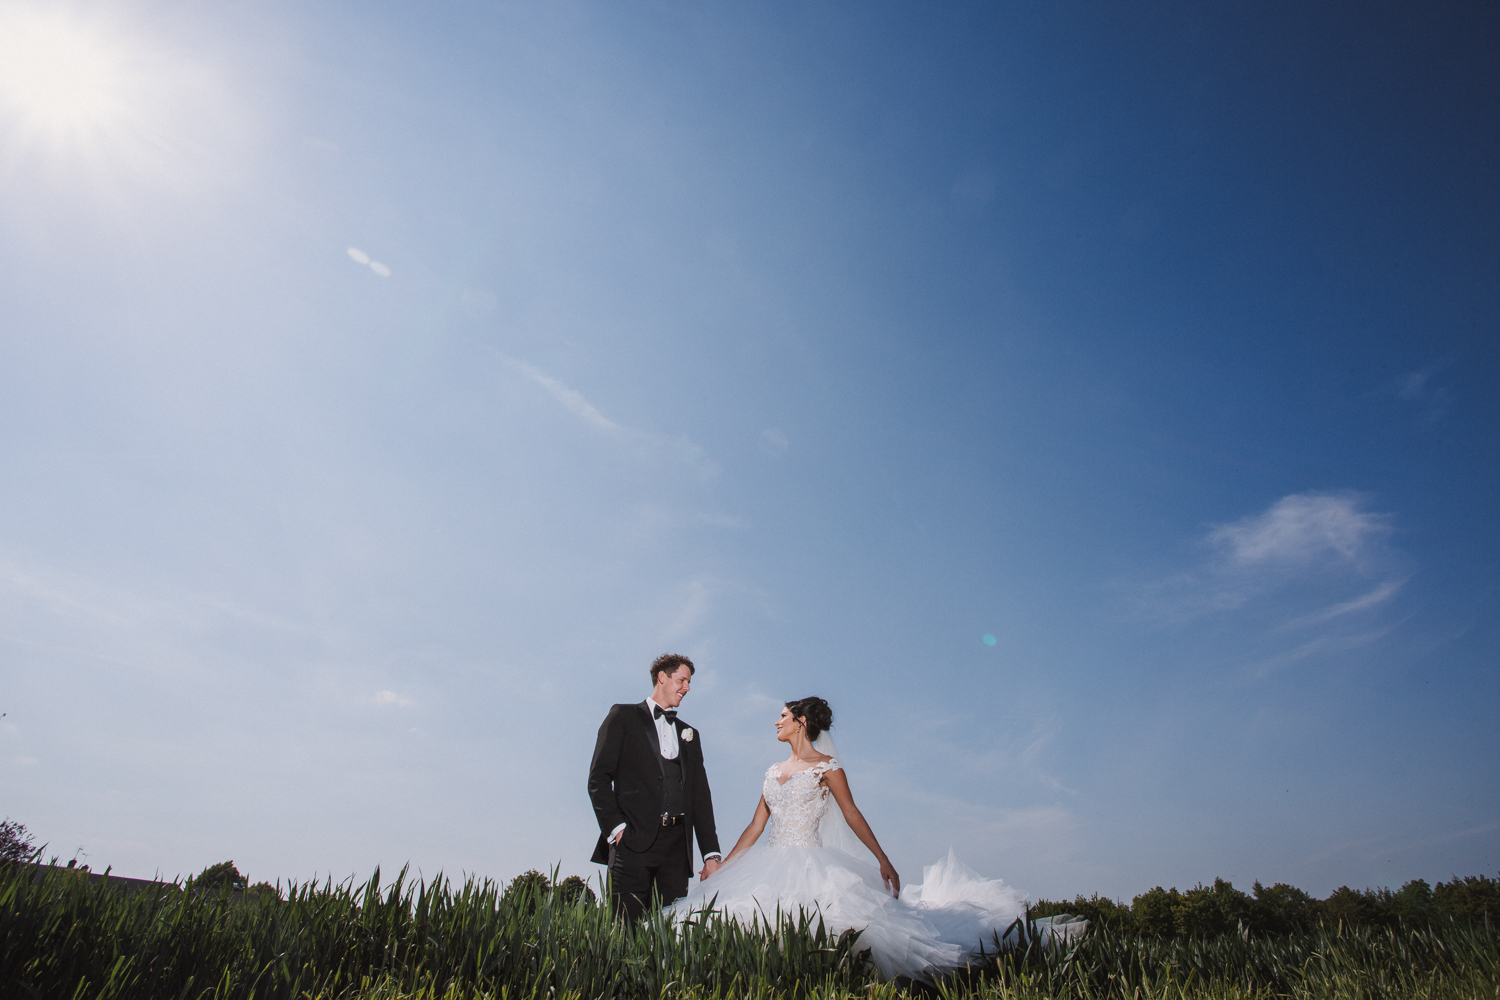 different wedding photographers in sheffield